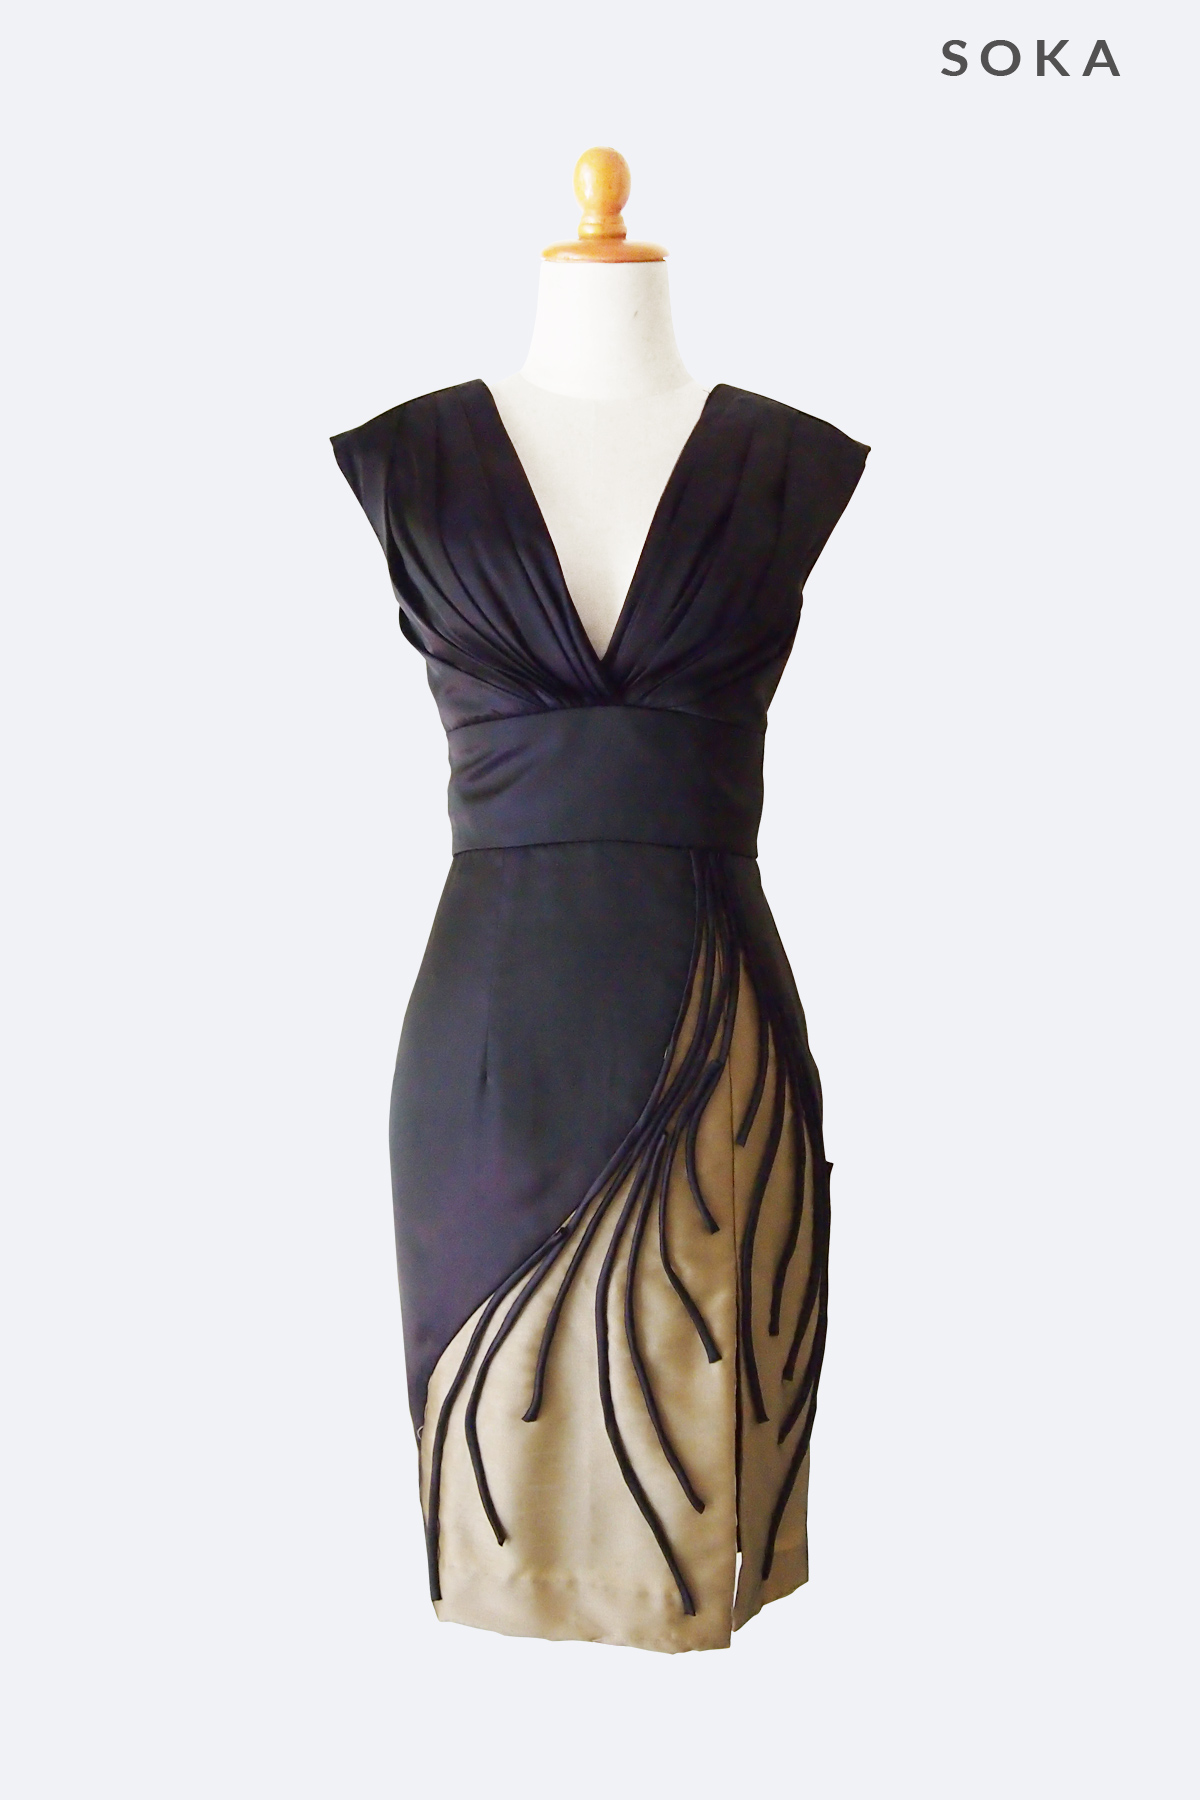 Fantastic  Dress Black Color Medium Size  From Category WOMEN39S CLOTHING